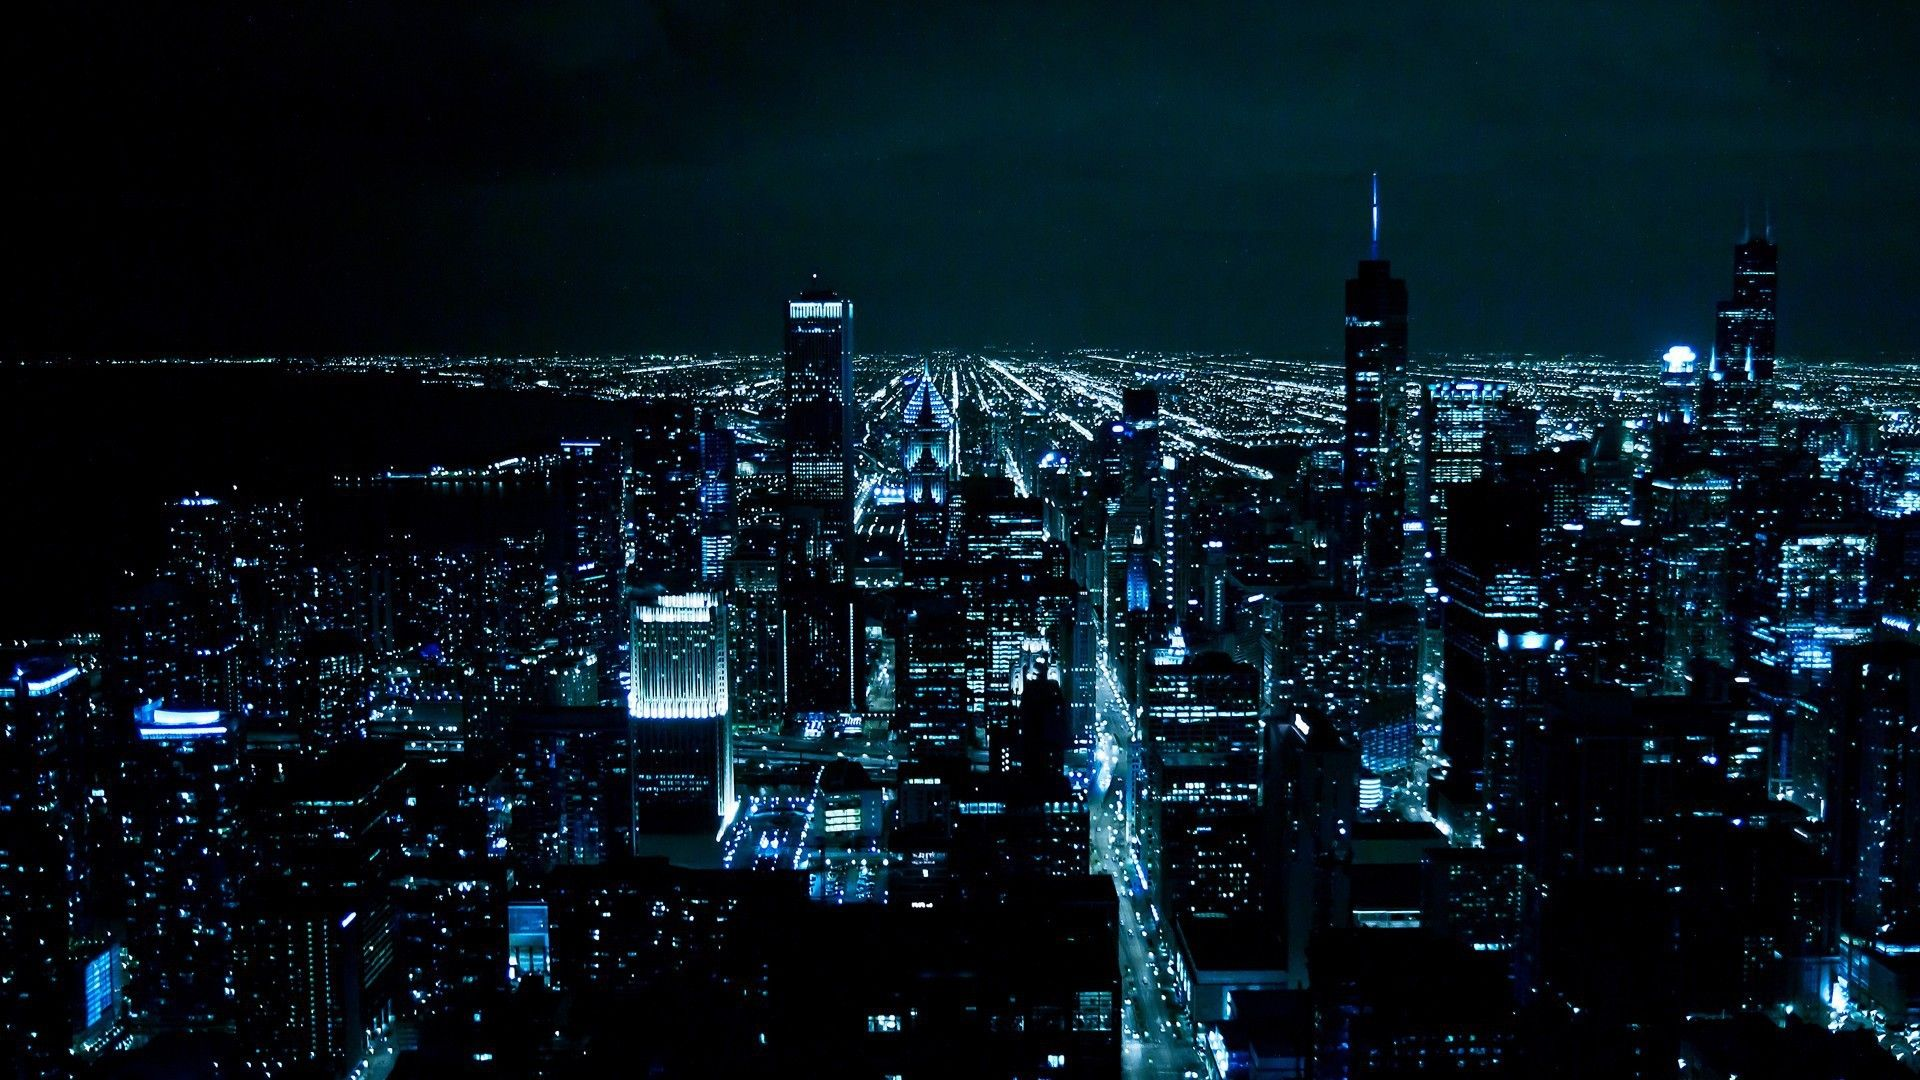 Night City Wallpapers Top Free Night City Backgrounds Wallpaperaccess